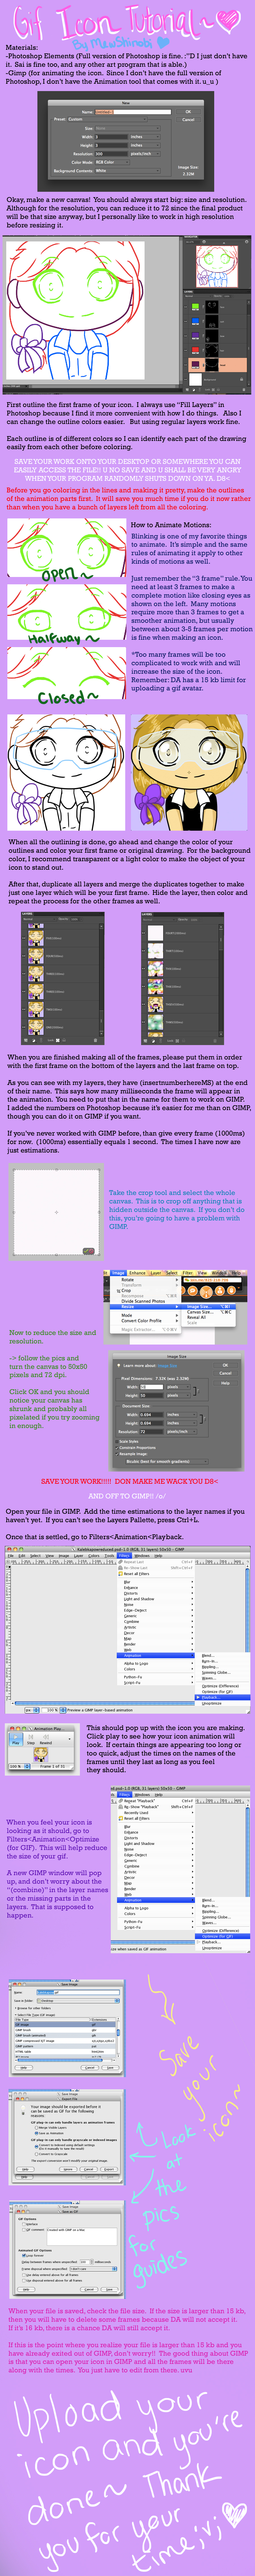 Gif Icon Tutorial by MewShinobi